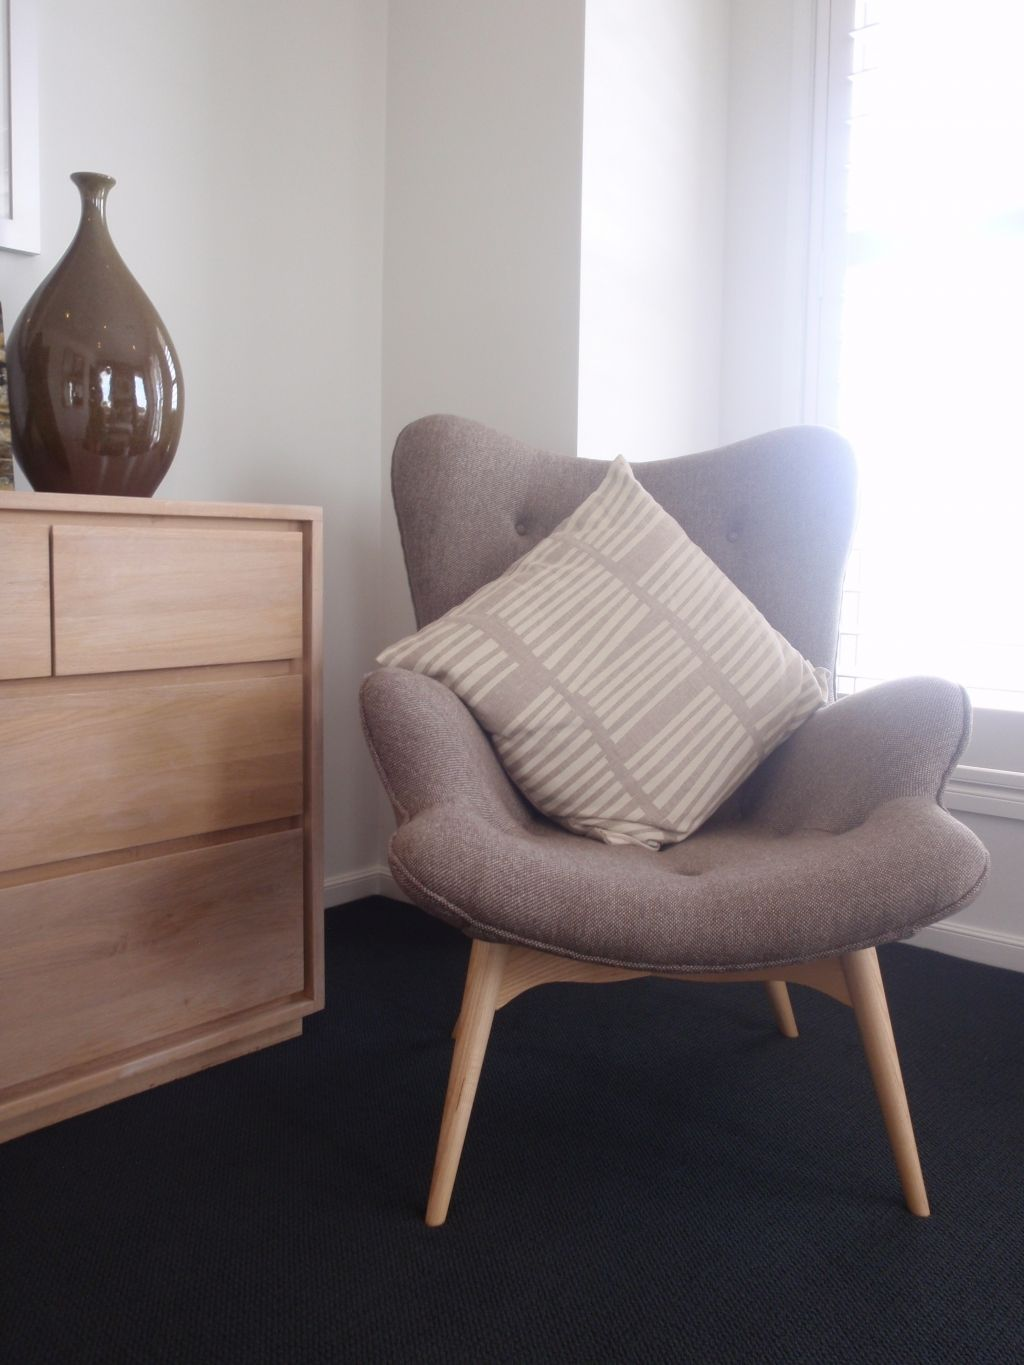 Comfy Chairs For Small Spaces Decorating Ideas